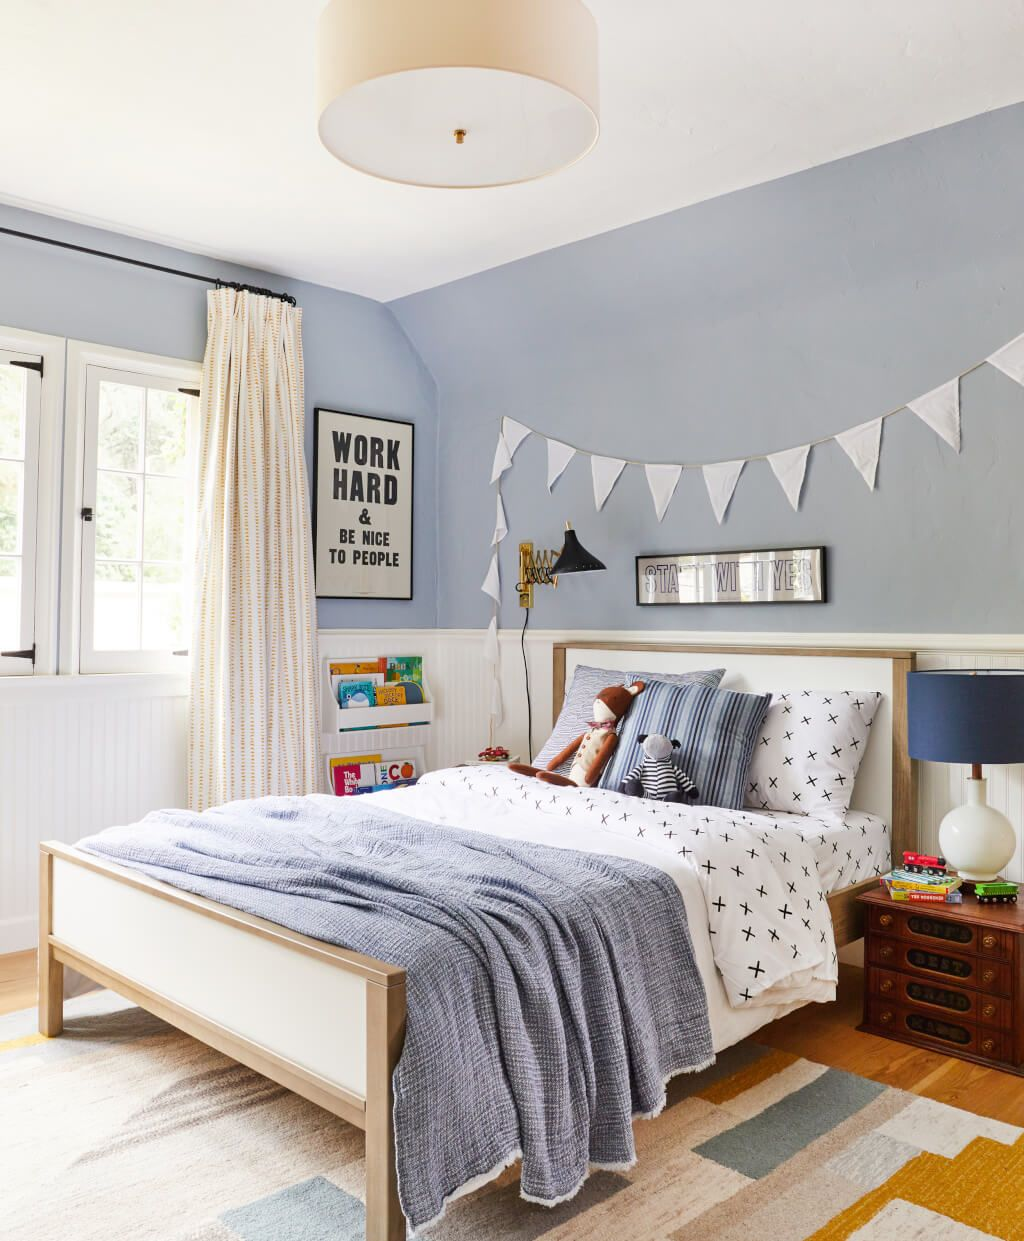 1 Bedroom Apartment Decorating Ideas: Charlie's Big Boy Room Reveal + Shop The Look